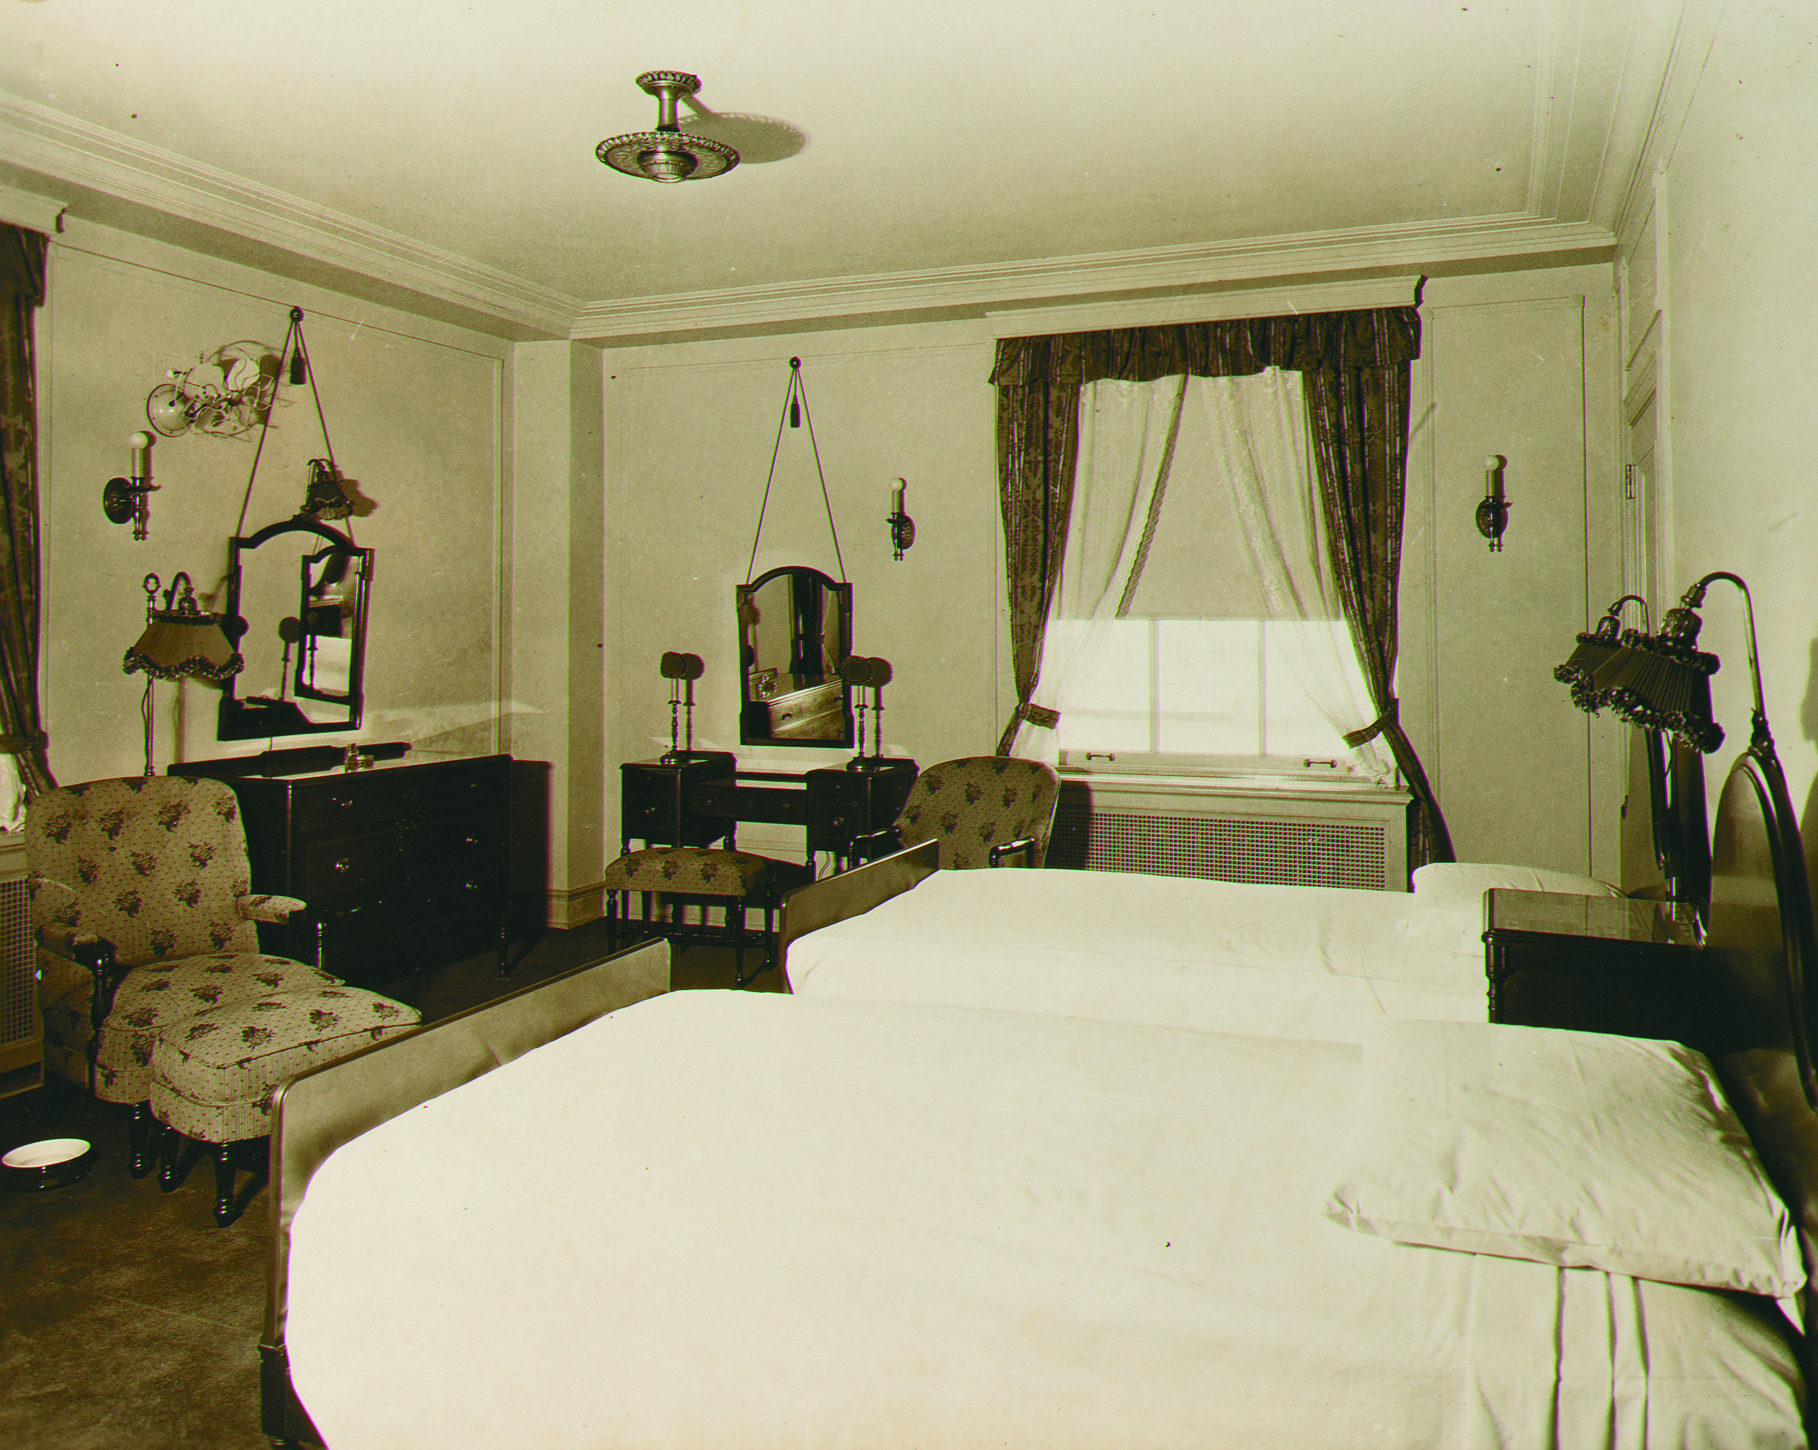 Peabody Hotel room, 1925, likely a corner room (Courtesy of The Peabody Hotel)